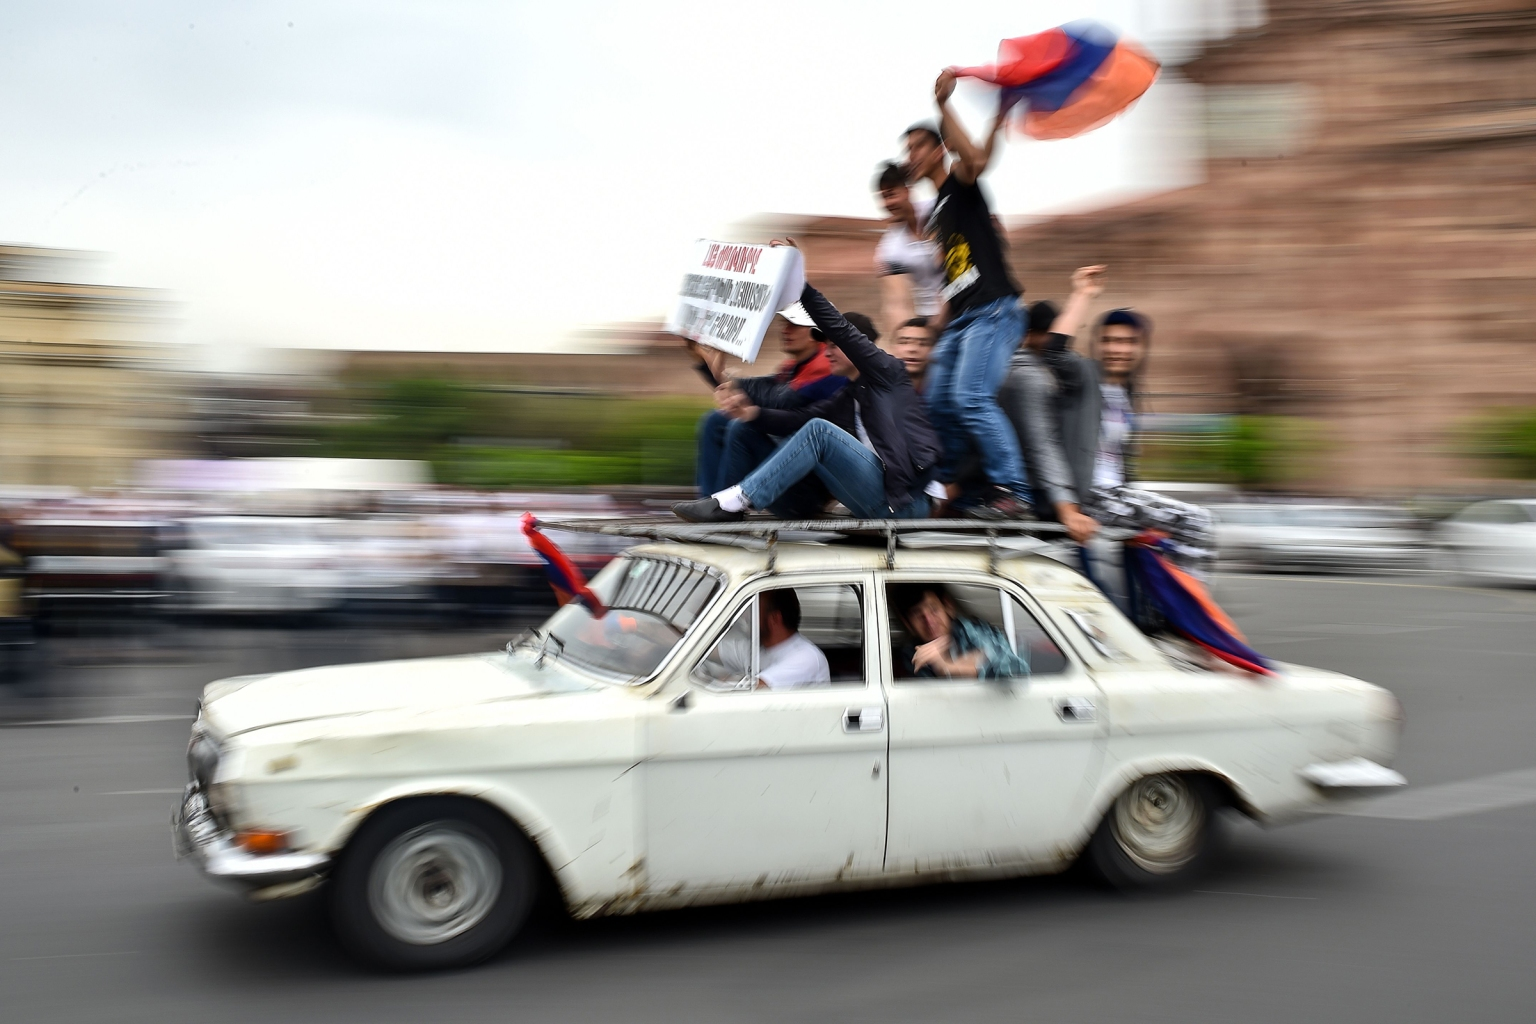 Supporters of Armenian opposition leader Nikol Pashinyan ride atop a car on May 8 in downtown Yerevan as the parliament voted to elect a new prime minister. Pashinyan, who spearheaded weeks of anti-establishment protests, won the election during the second vote in a week after he initially failed to win the ruling party's support. SERGEI GAPON/AFP/Getty Images